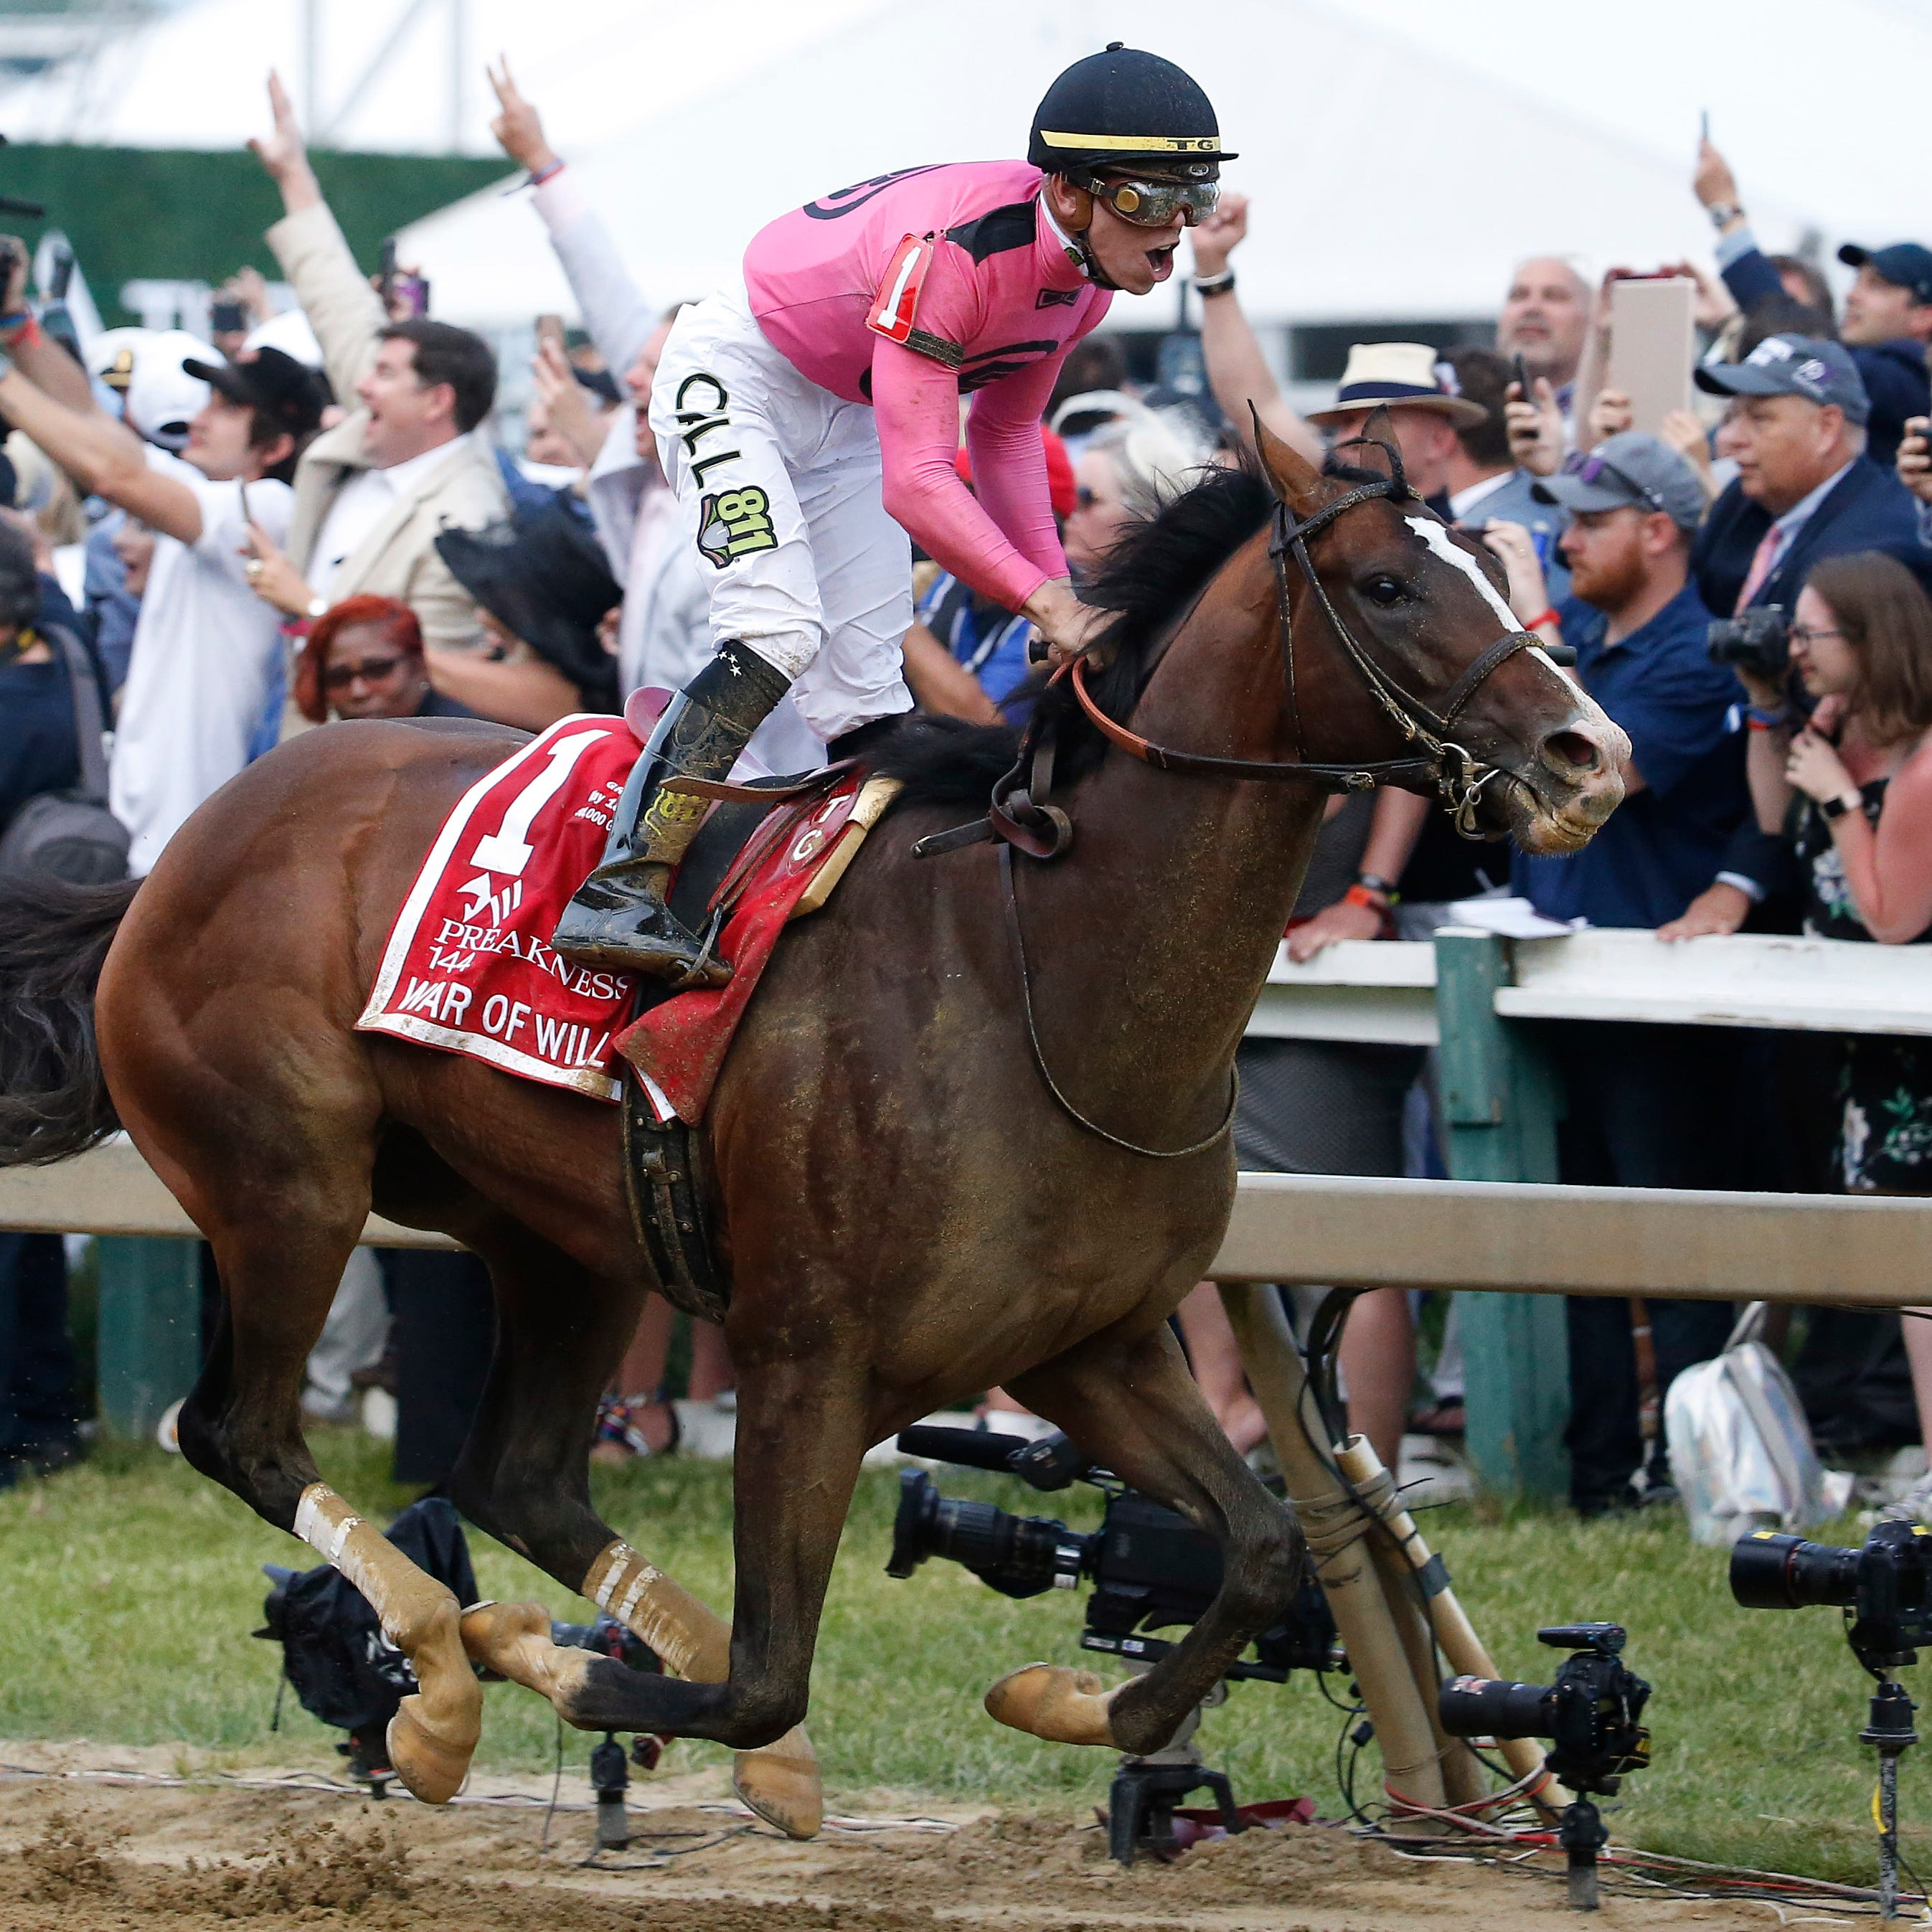 Preakness 2019: Who is 3-year-old leader? Maximum Security? War of Will?